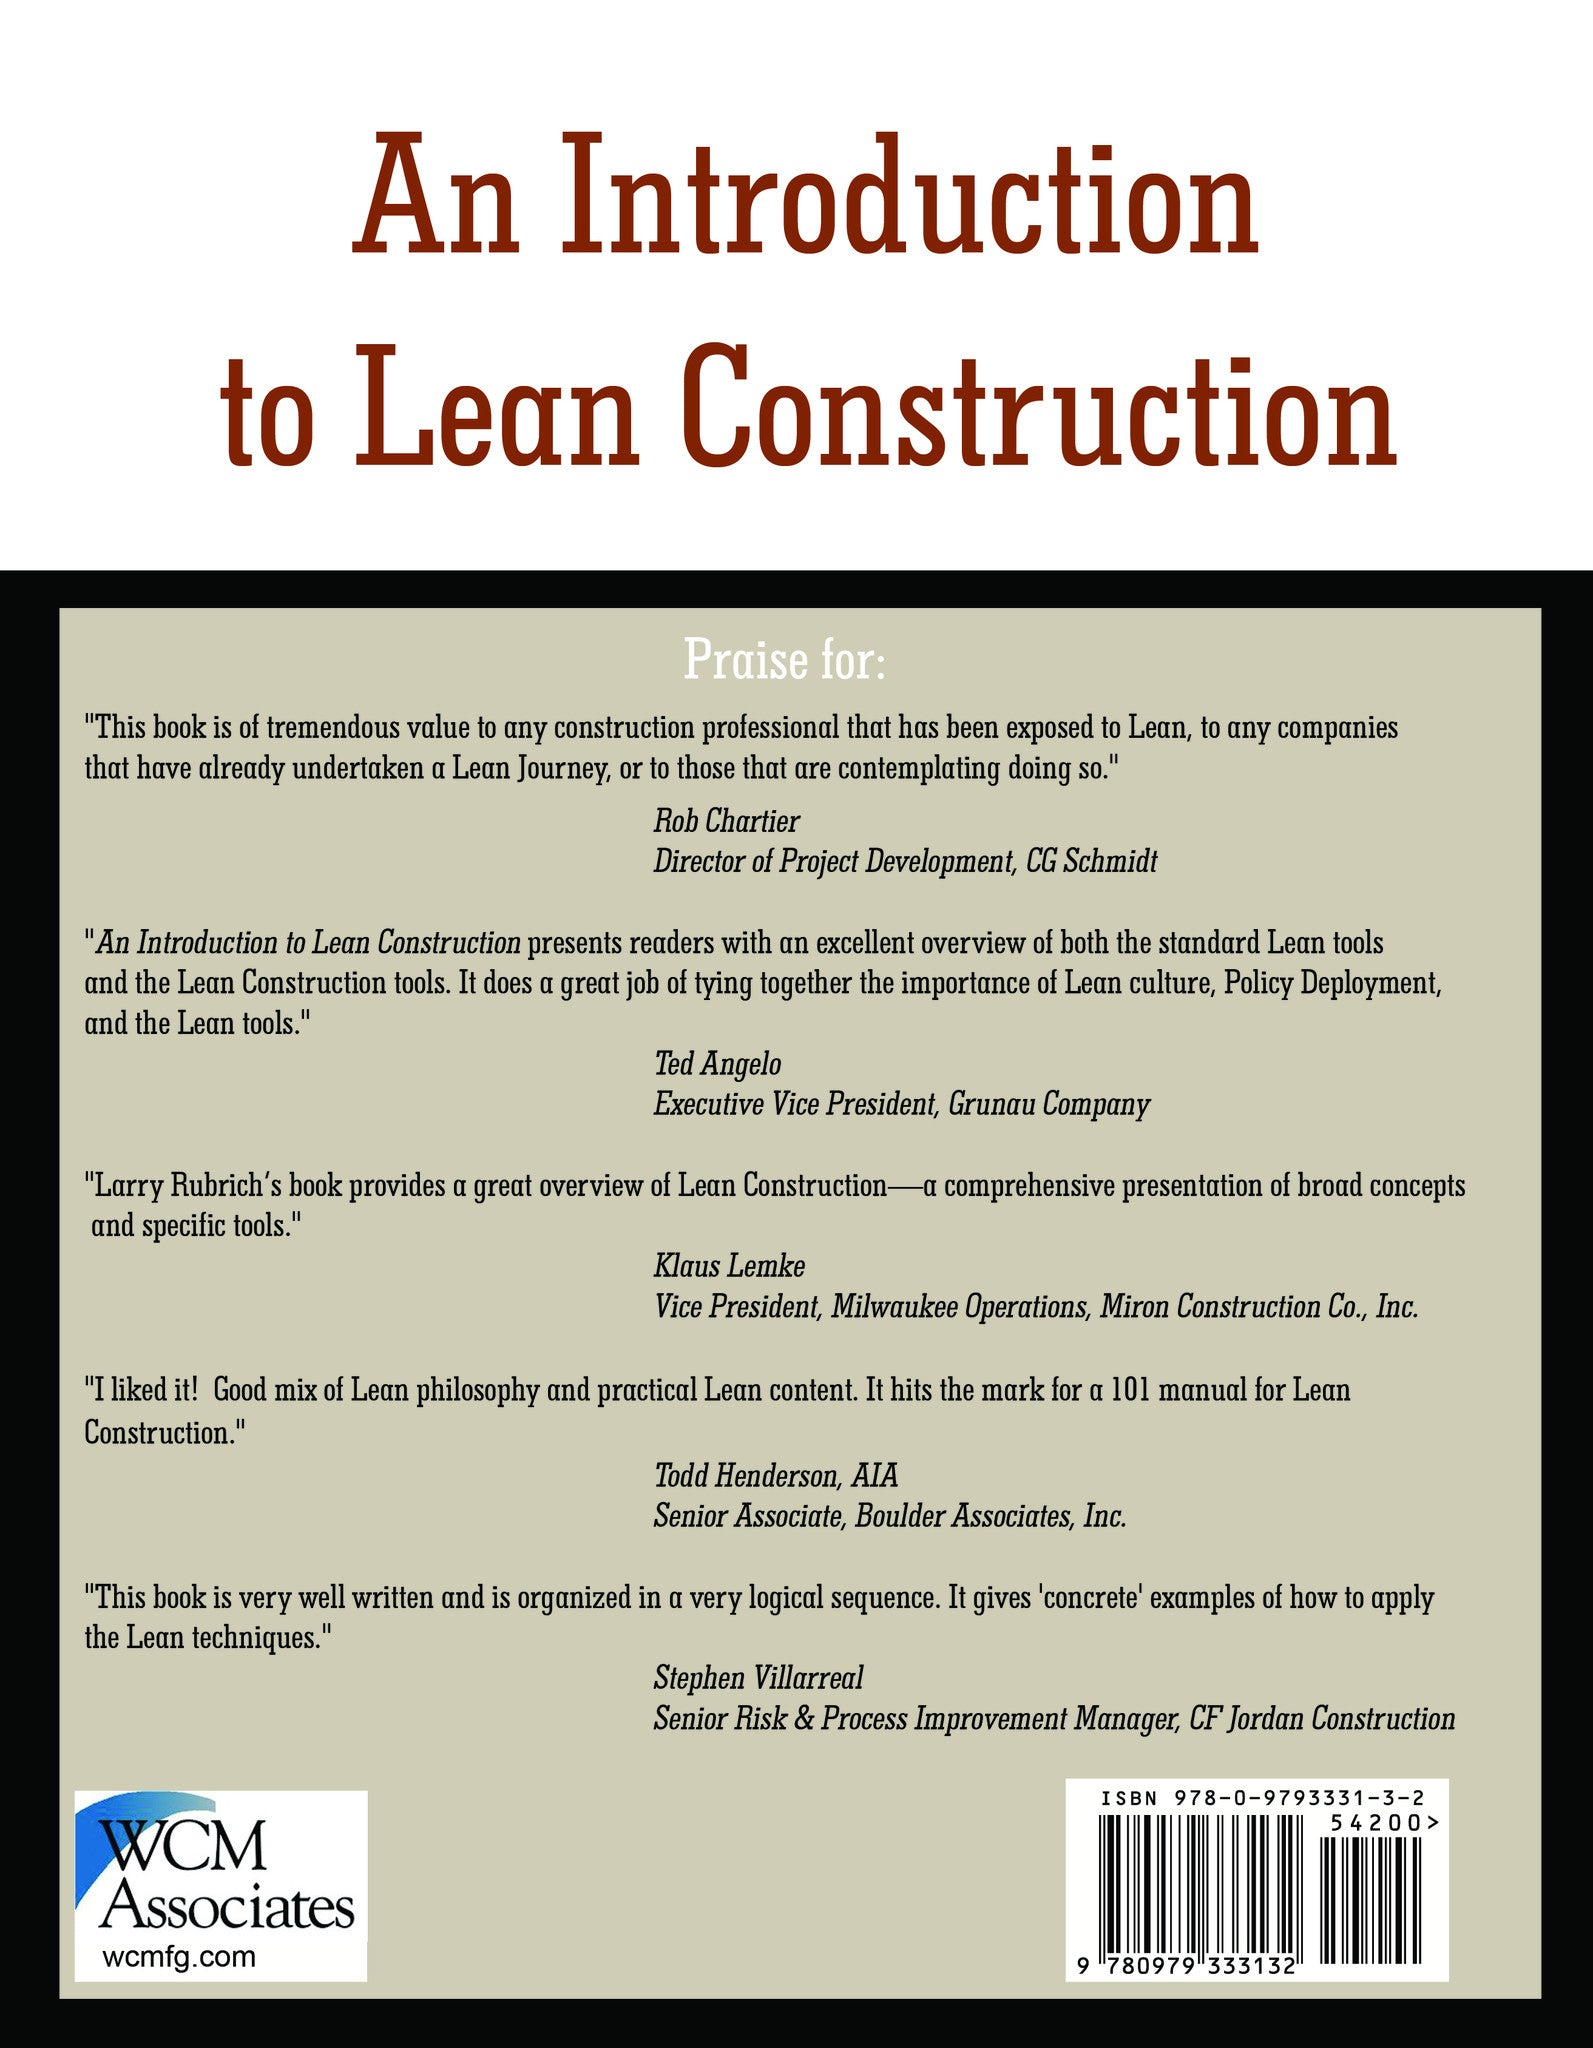 An Introduction to Lean Construction - Applying Lean to Construction  Organizations and Processes